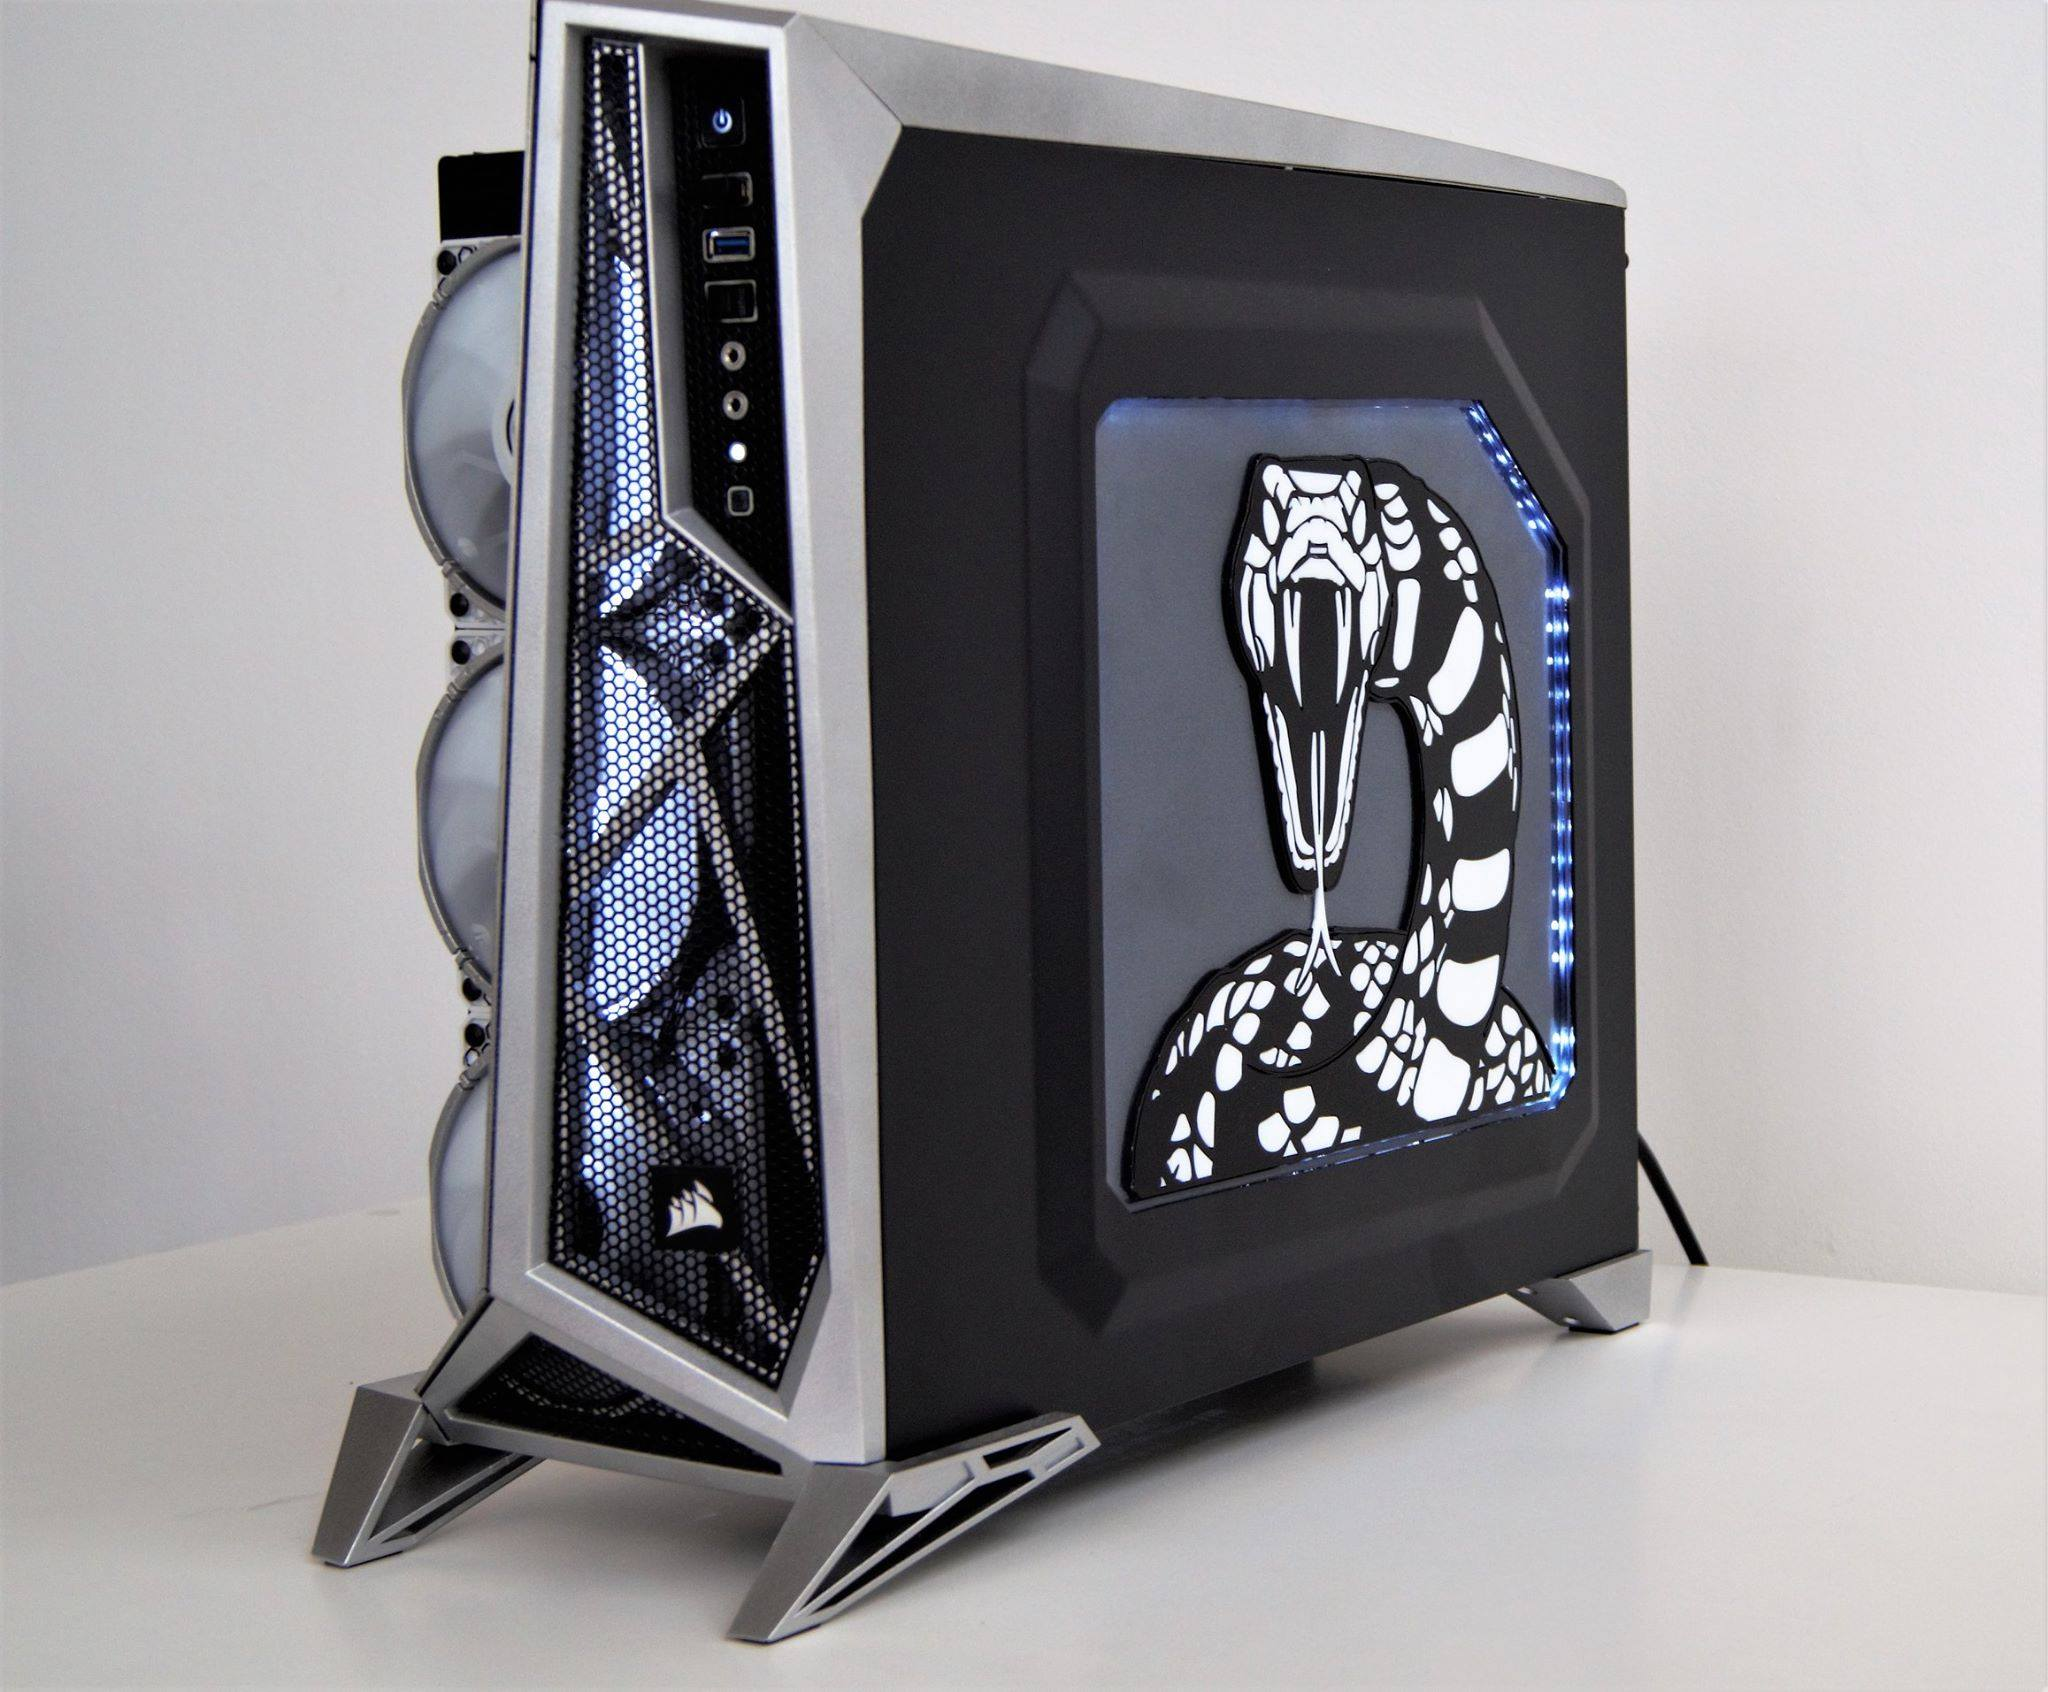 Corsair Carbide SPEC-Alpha - XFastest - 17880594_1705731106110521_3390770889242696417_o.jpg